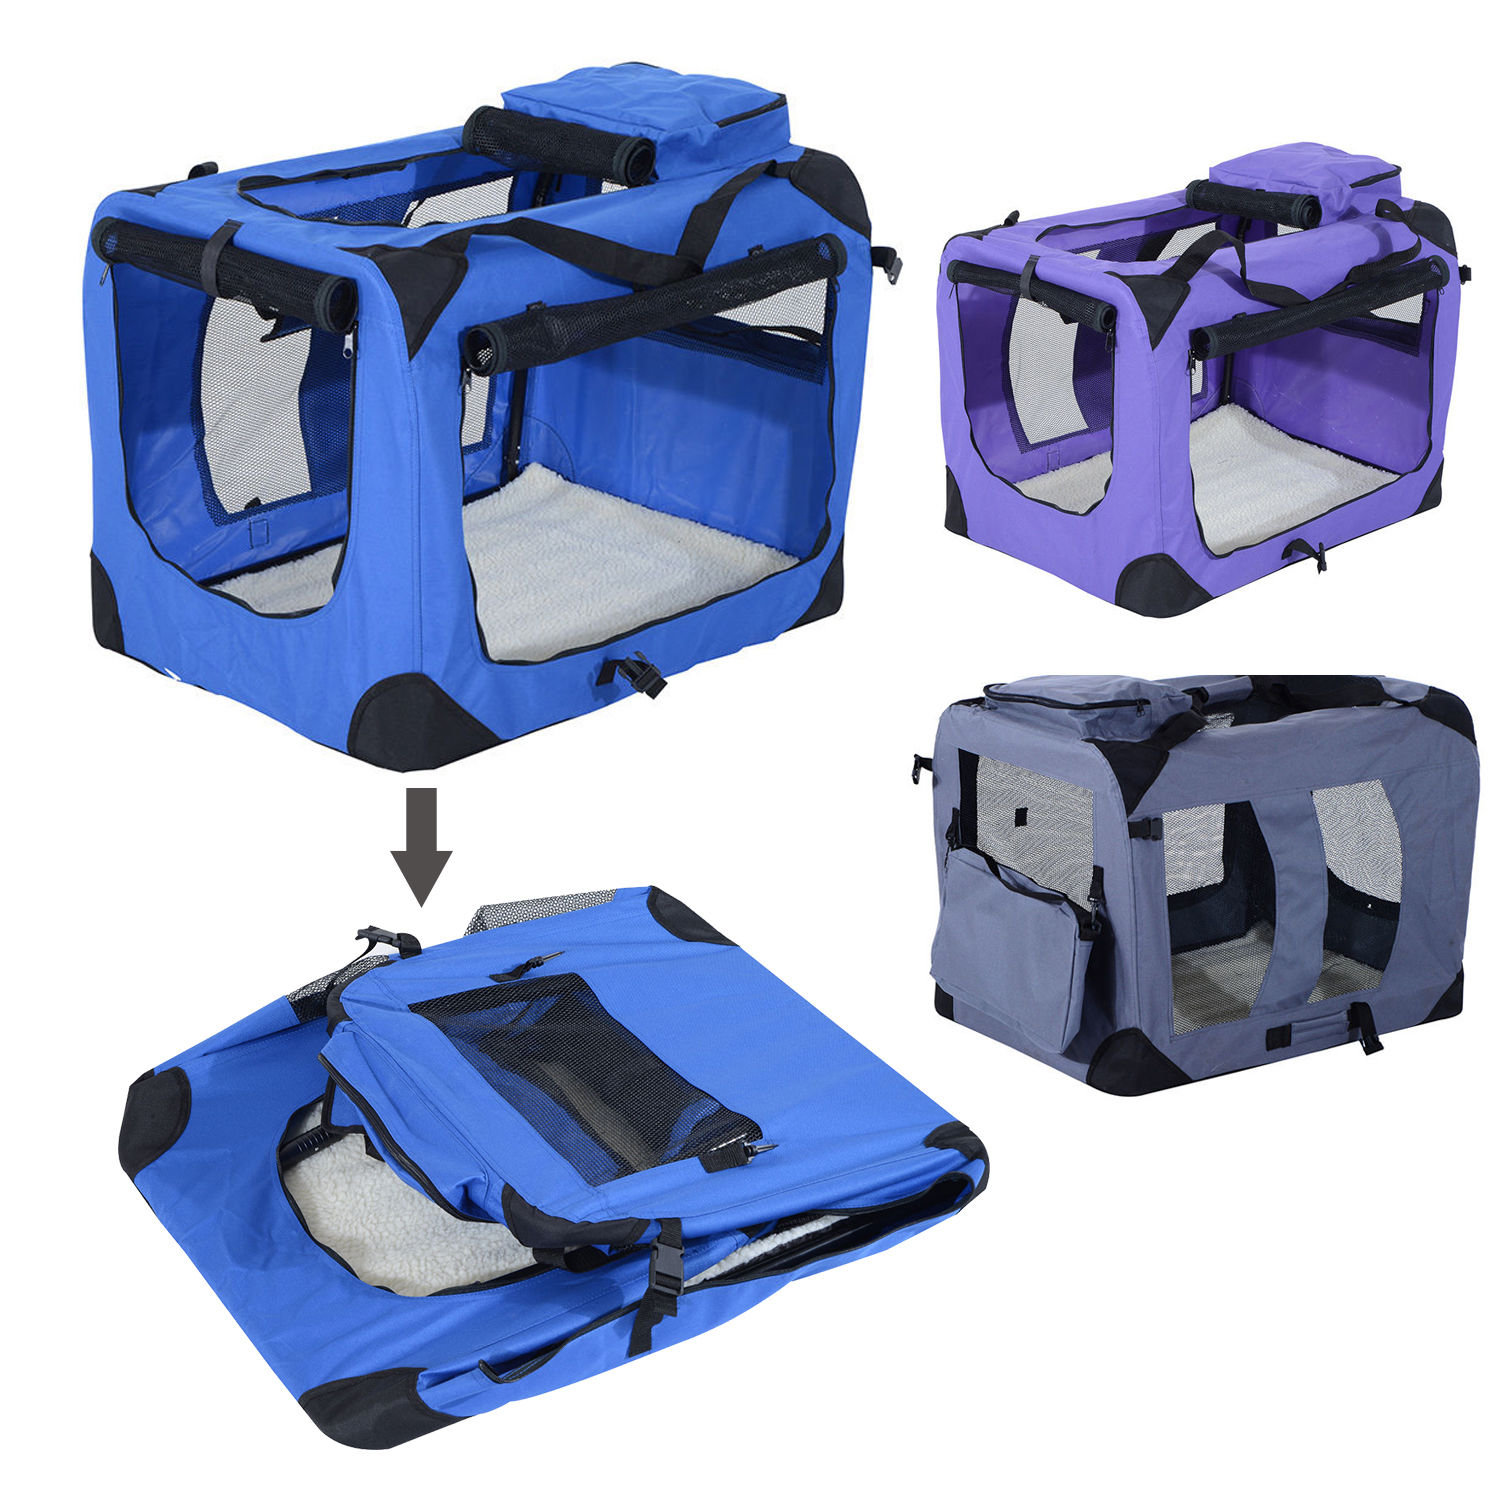 32 Inch Soft Sided Folding Crate Pet Carrier